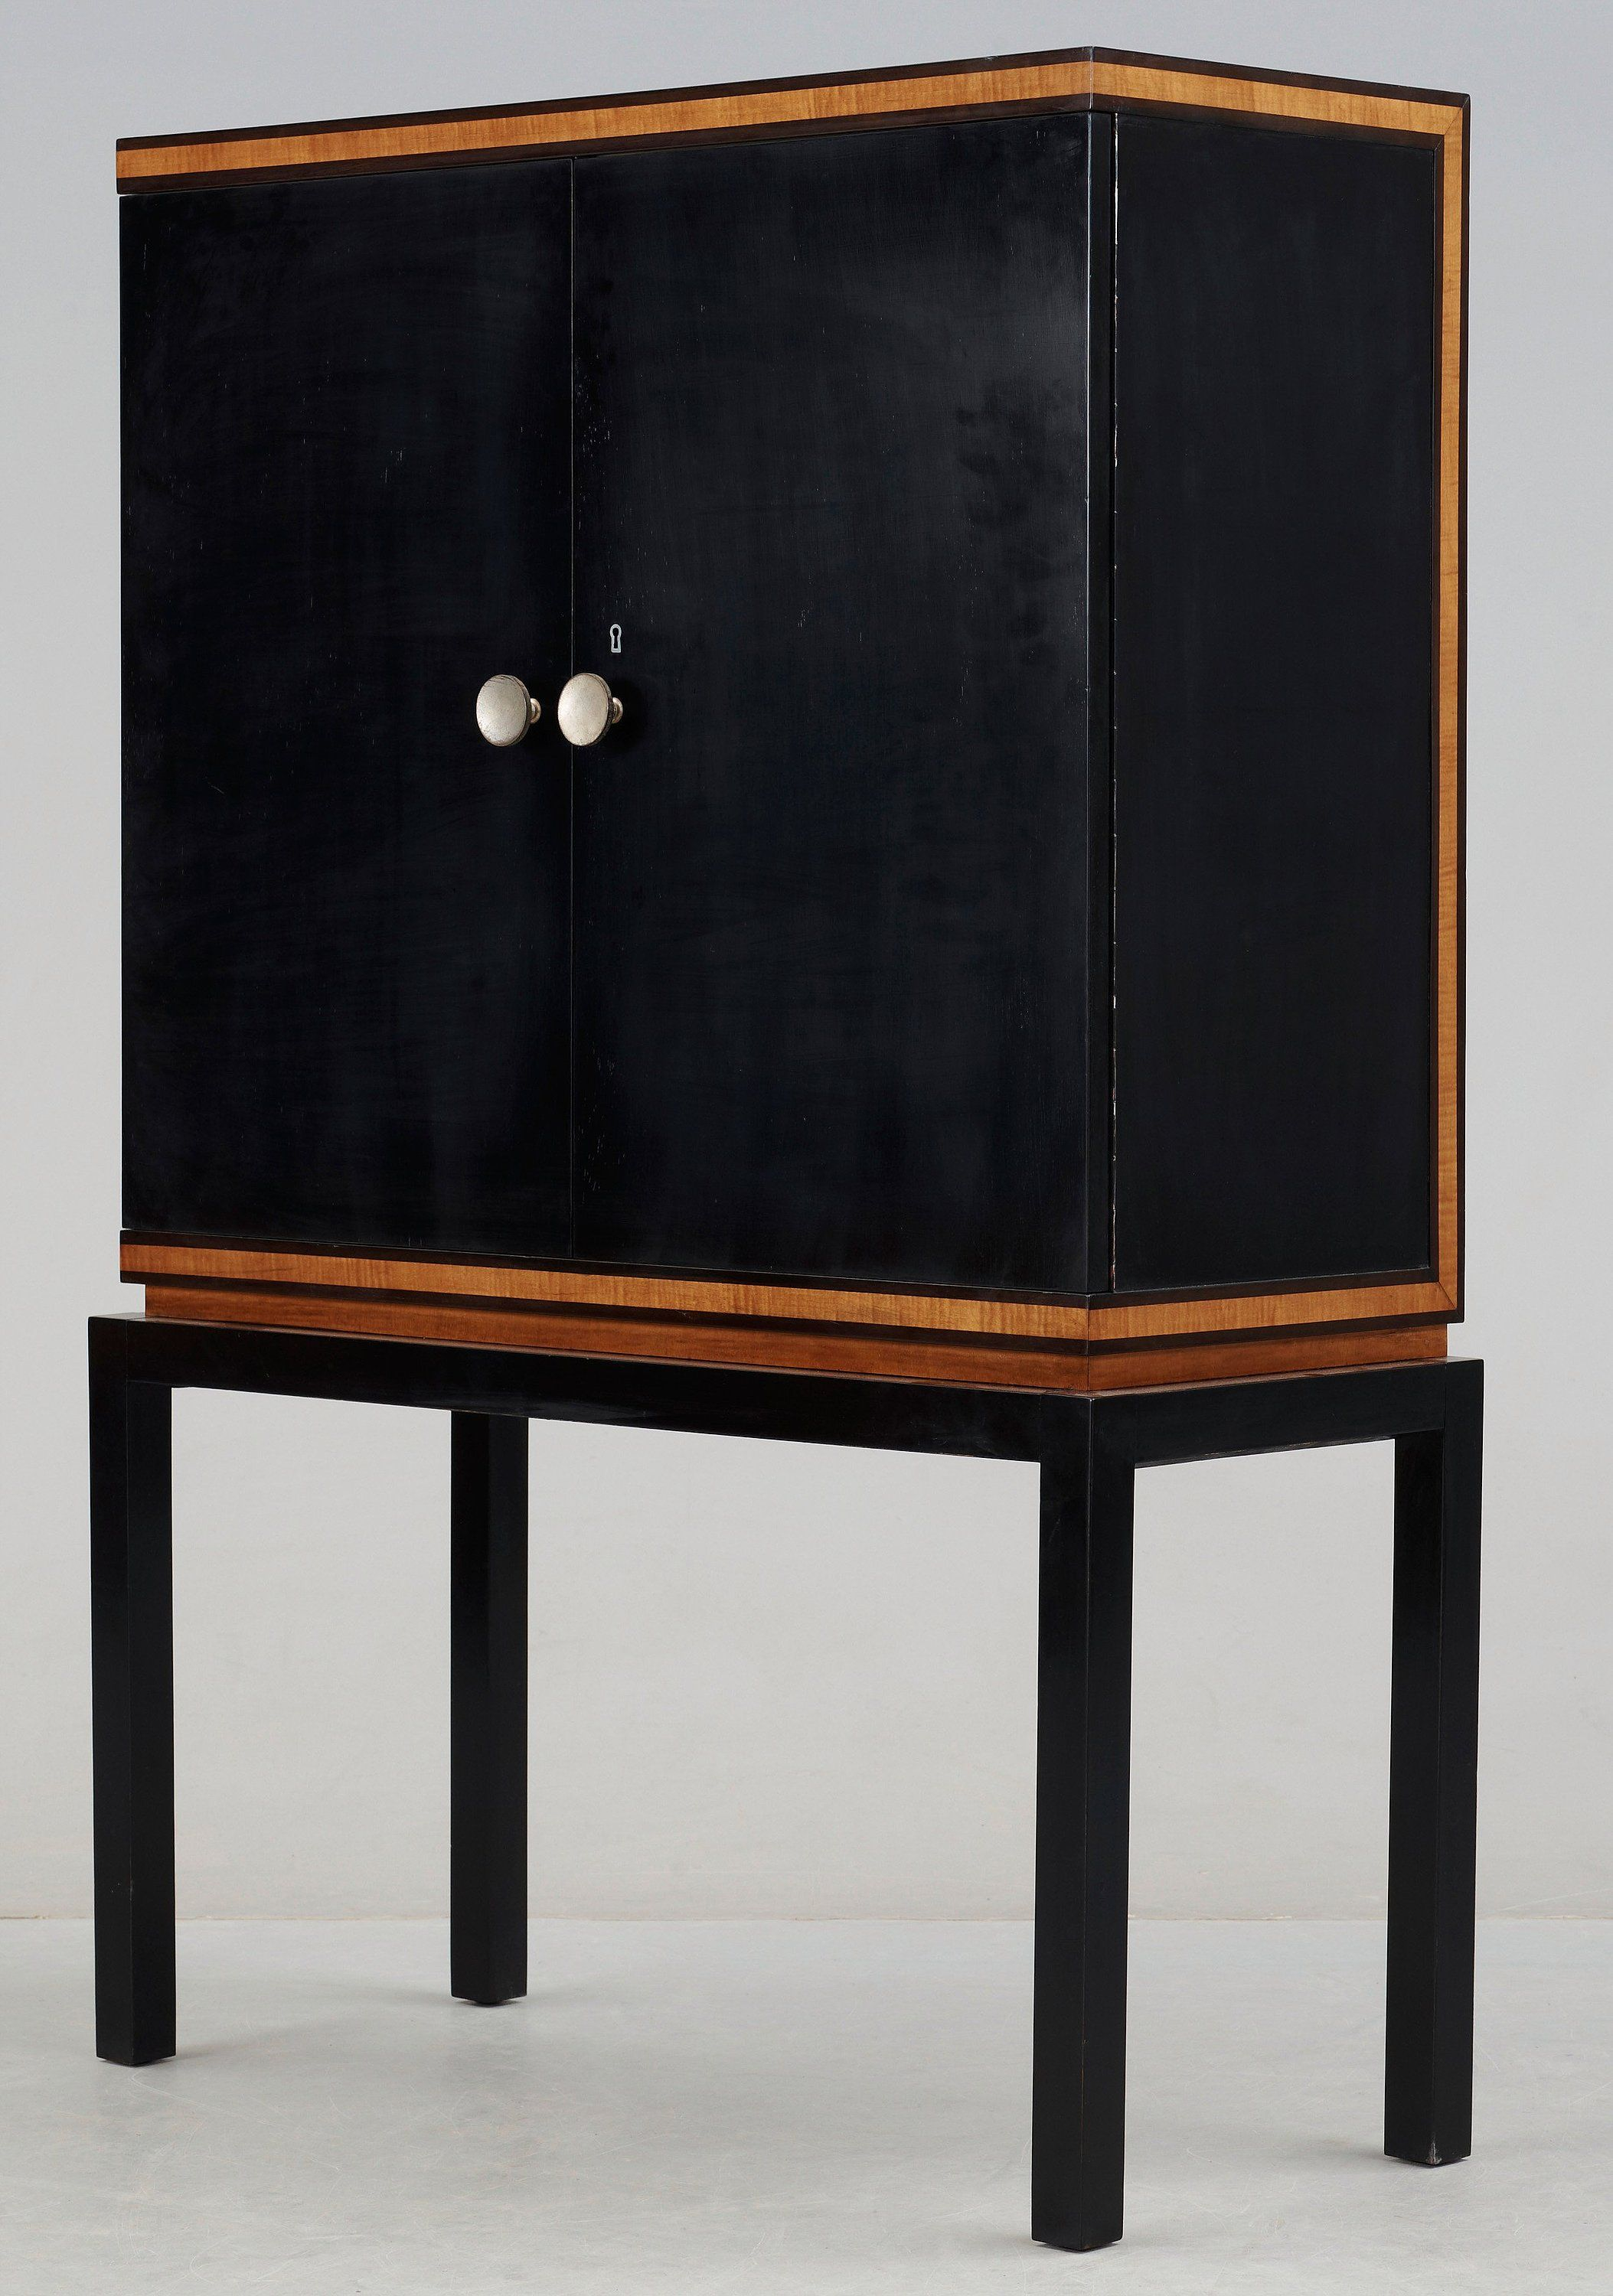 Otto Schultz Stained Birch And Mahogany Cabinet For Boet, 1930S